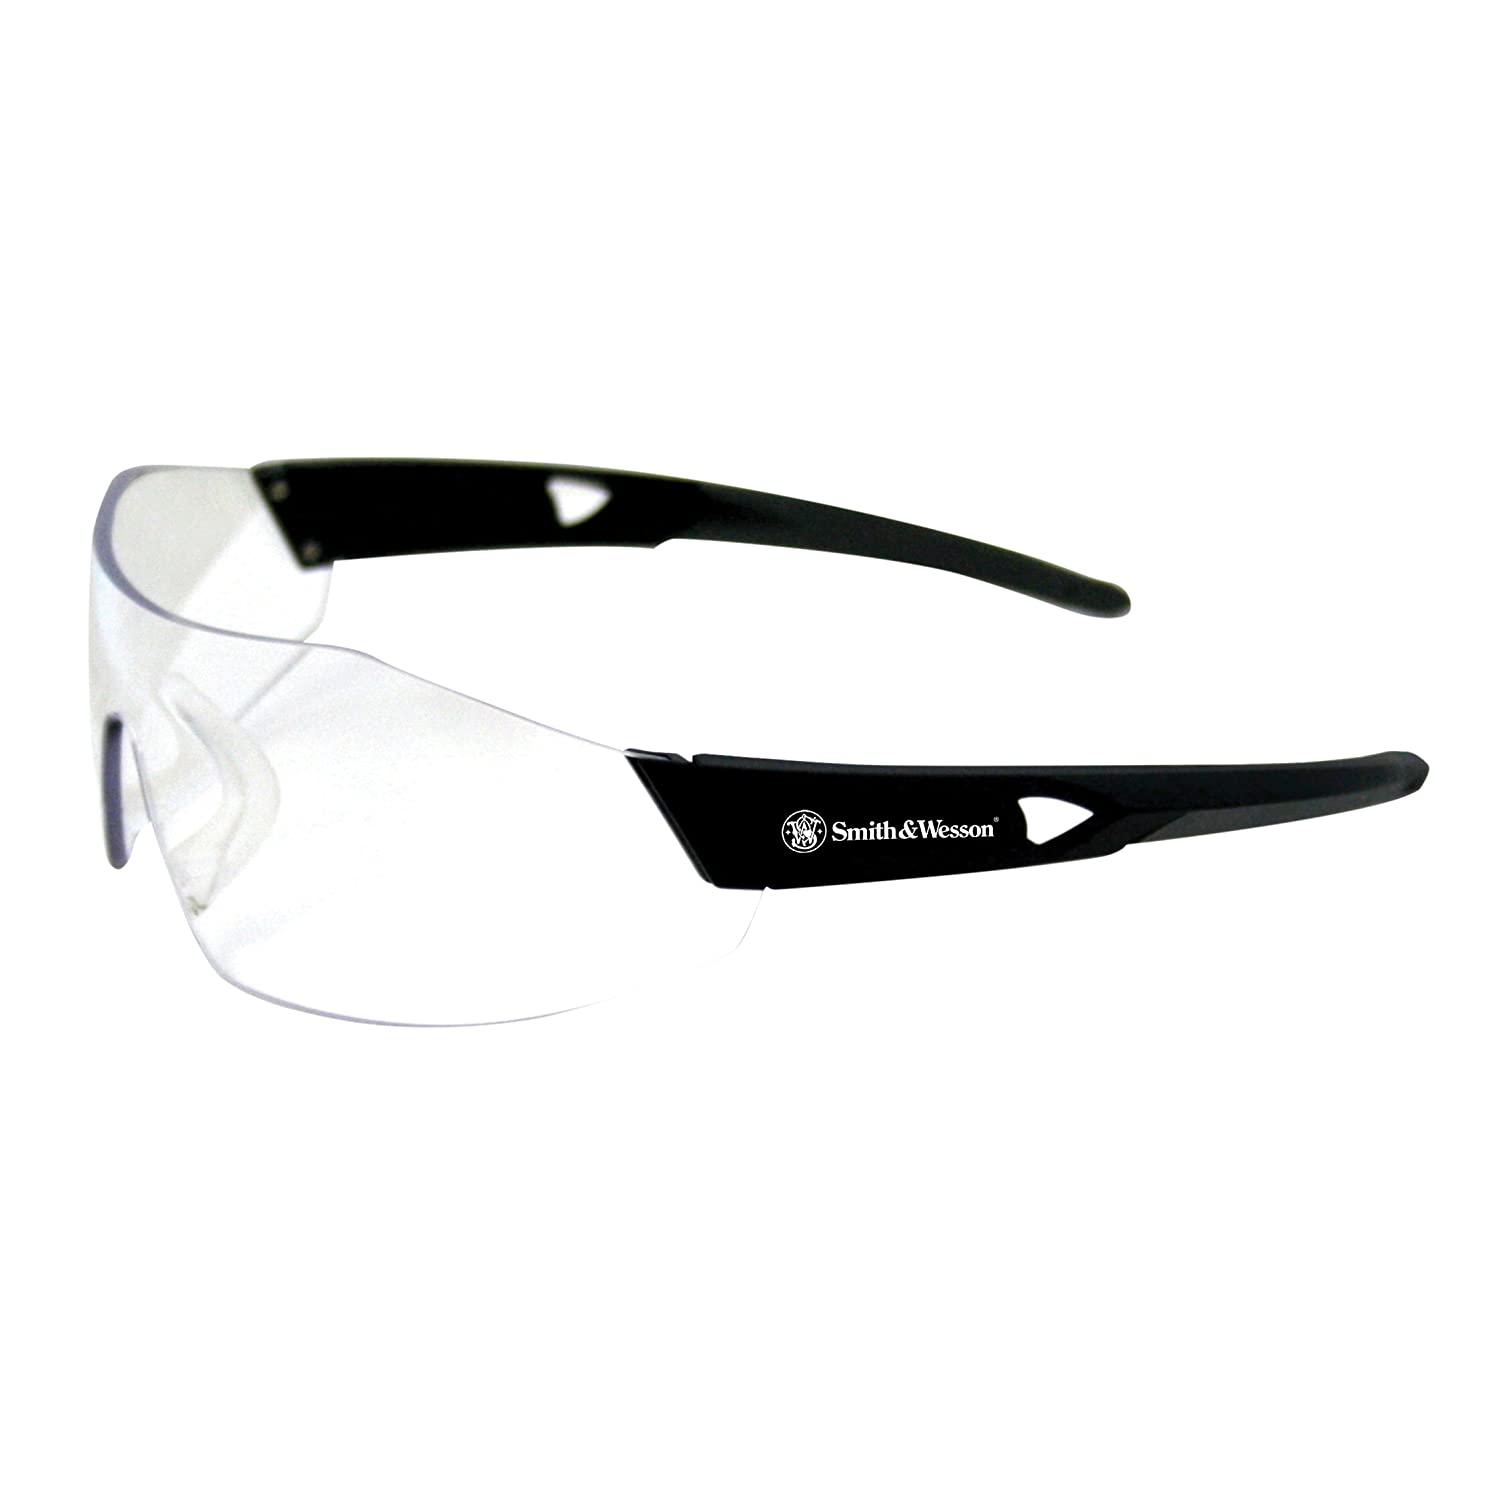 Clear Anti-Fog Lens Smith /& Wesson 44 Magnum Safety Glasses 23452 12 Pairs//Case Kimberly-Clark Professional Black Frame